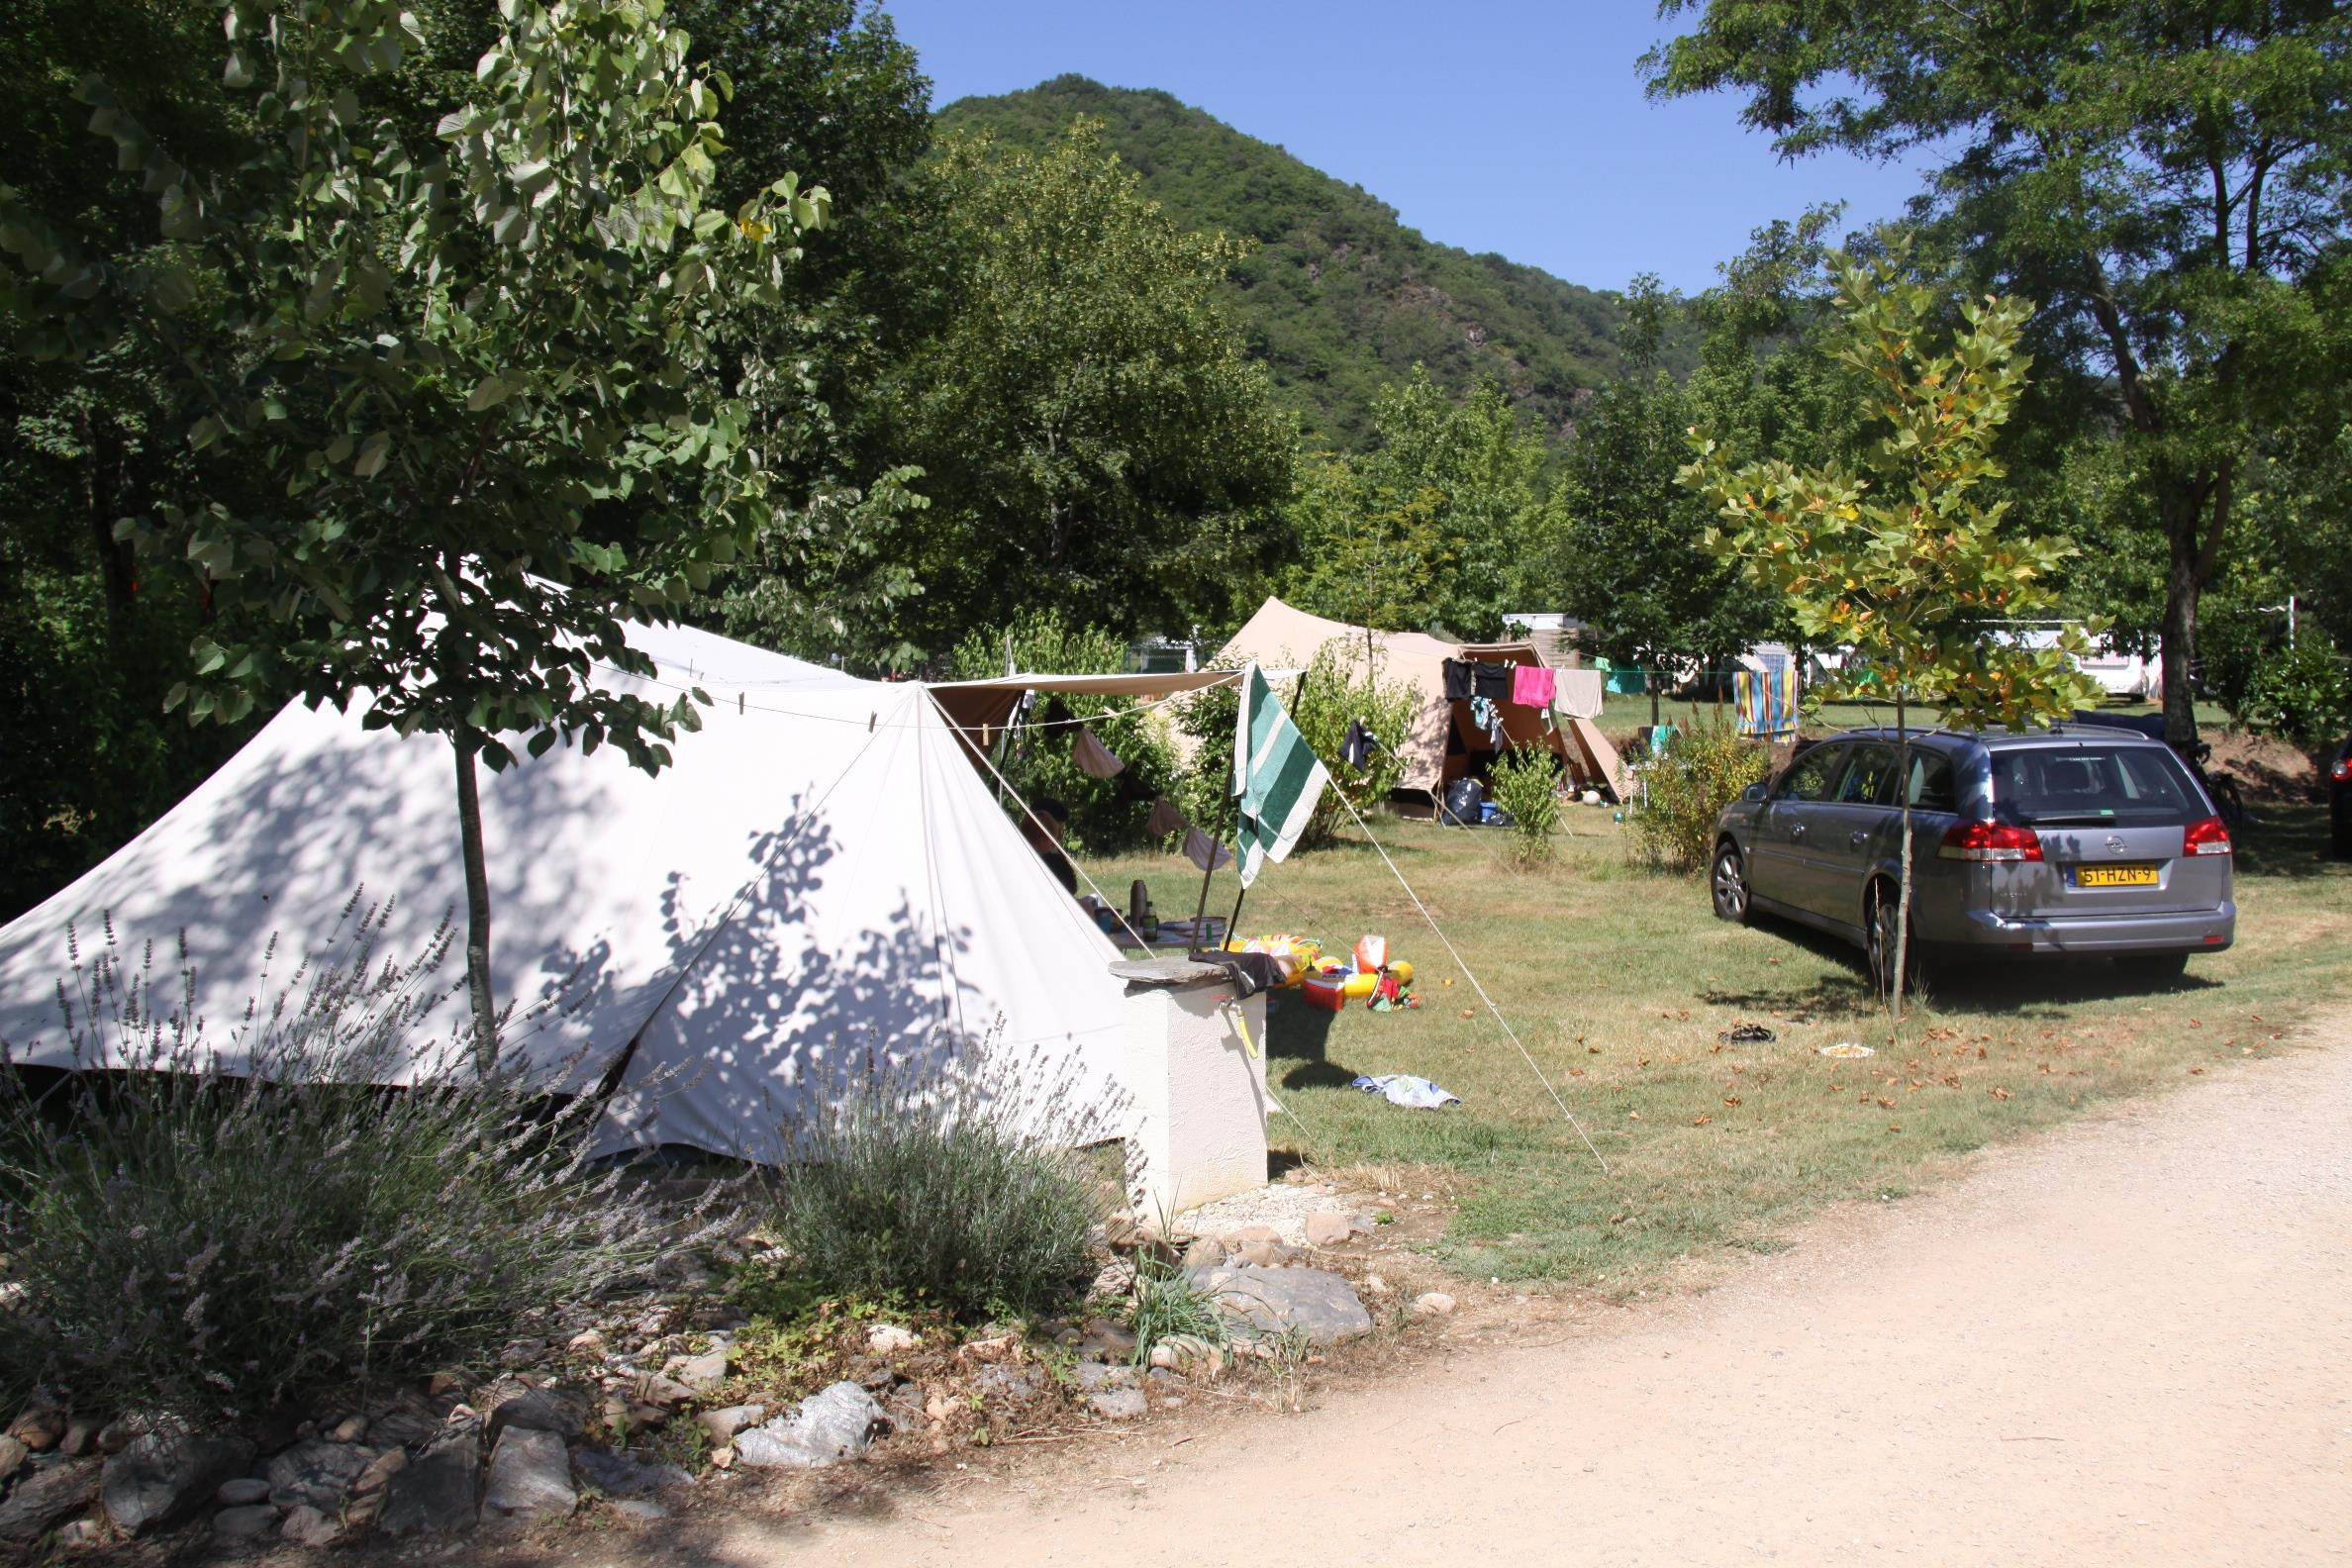 Establishment Camping La Plaine - Saint Parthem